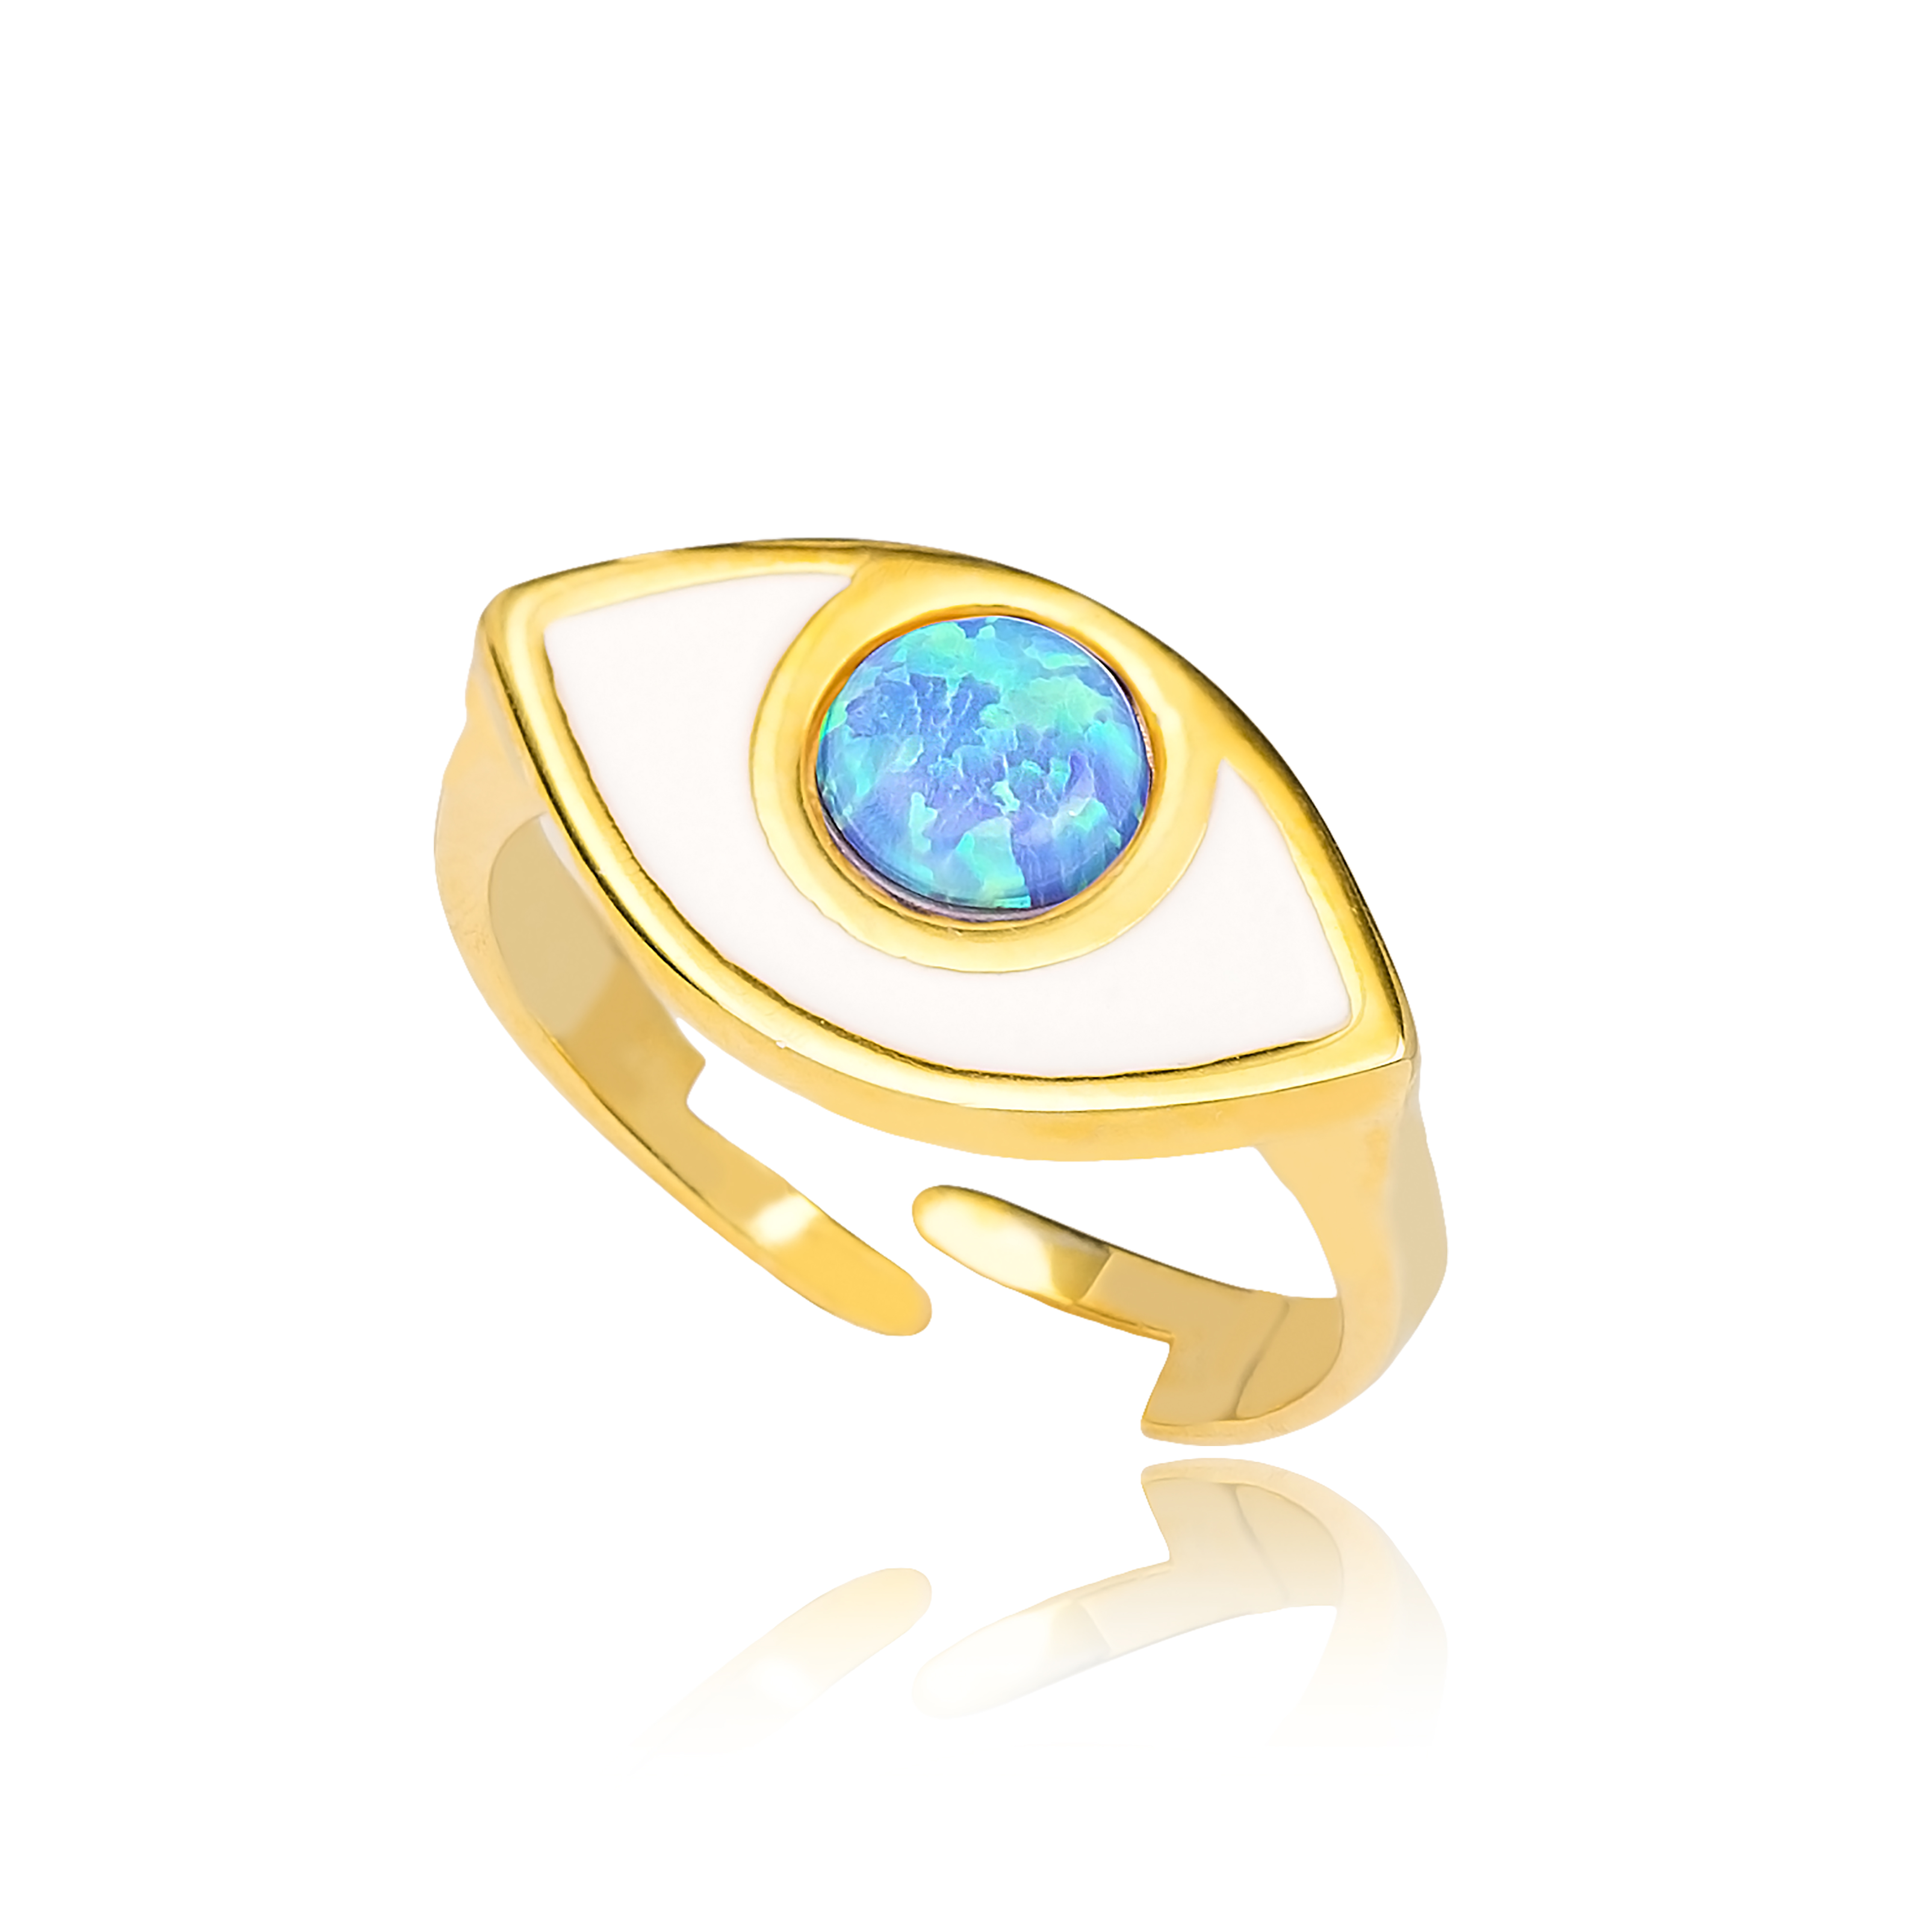 Blue Opal Evil Eye Adjustable Ring Turkish Wholesale Handcrafted 925 Sterling Silver Jewelry